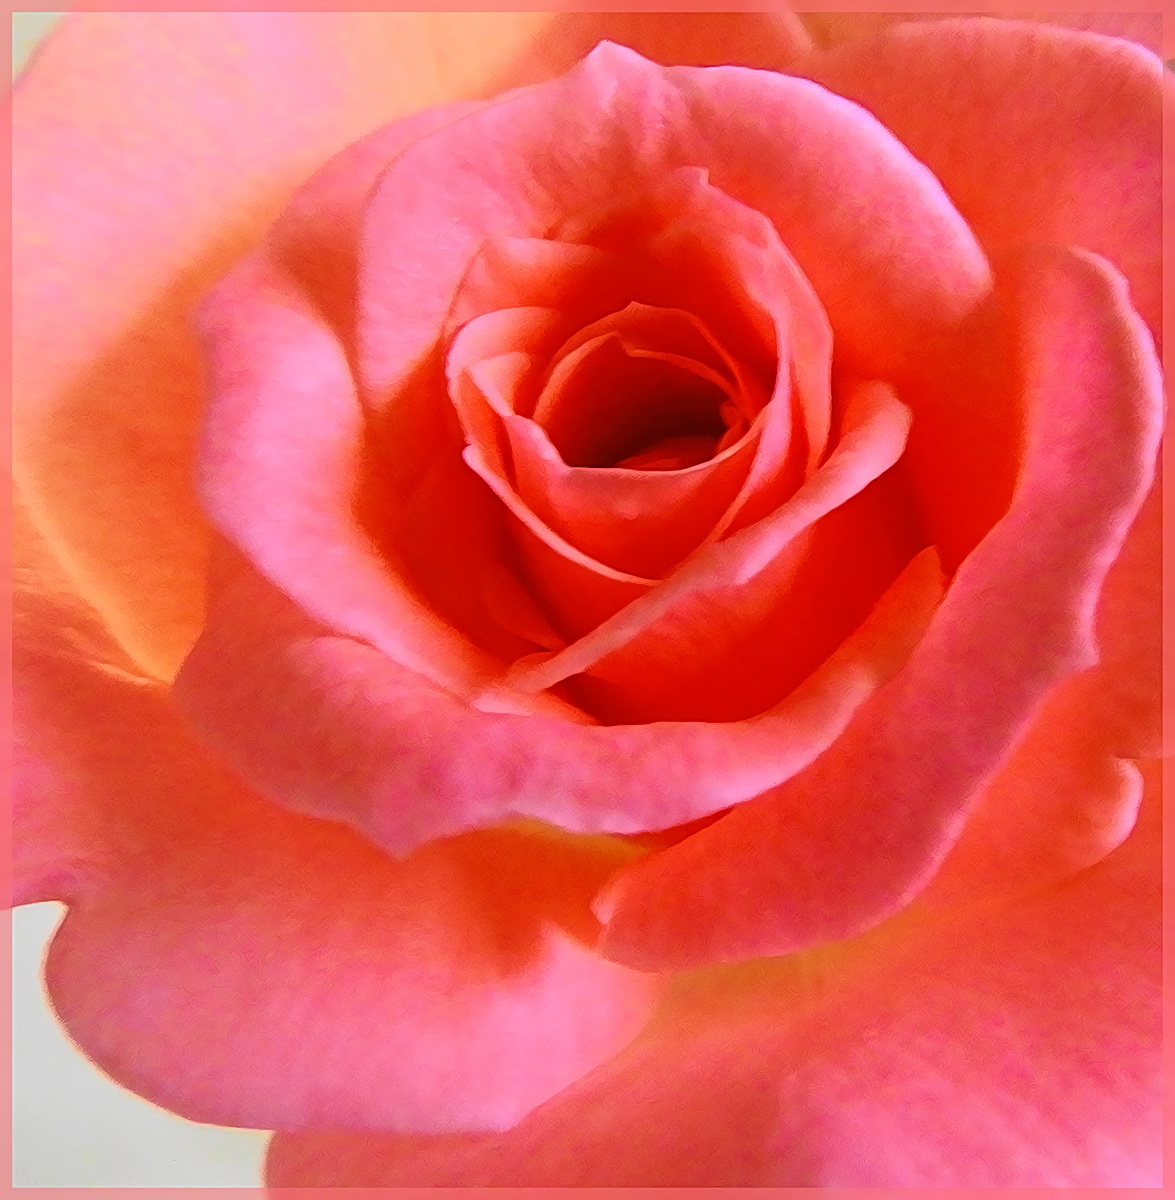 What's in a Name? A Rose by any other would smell as Sweet.